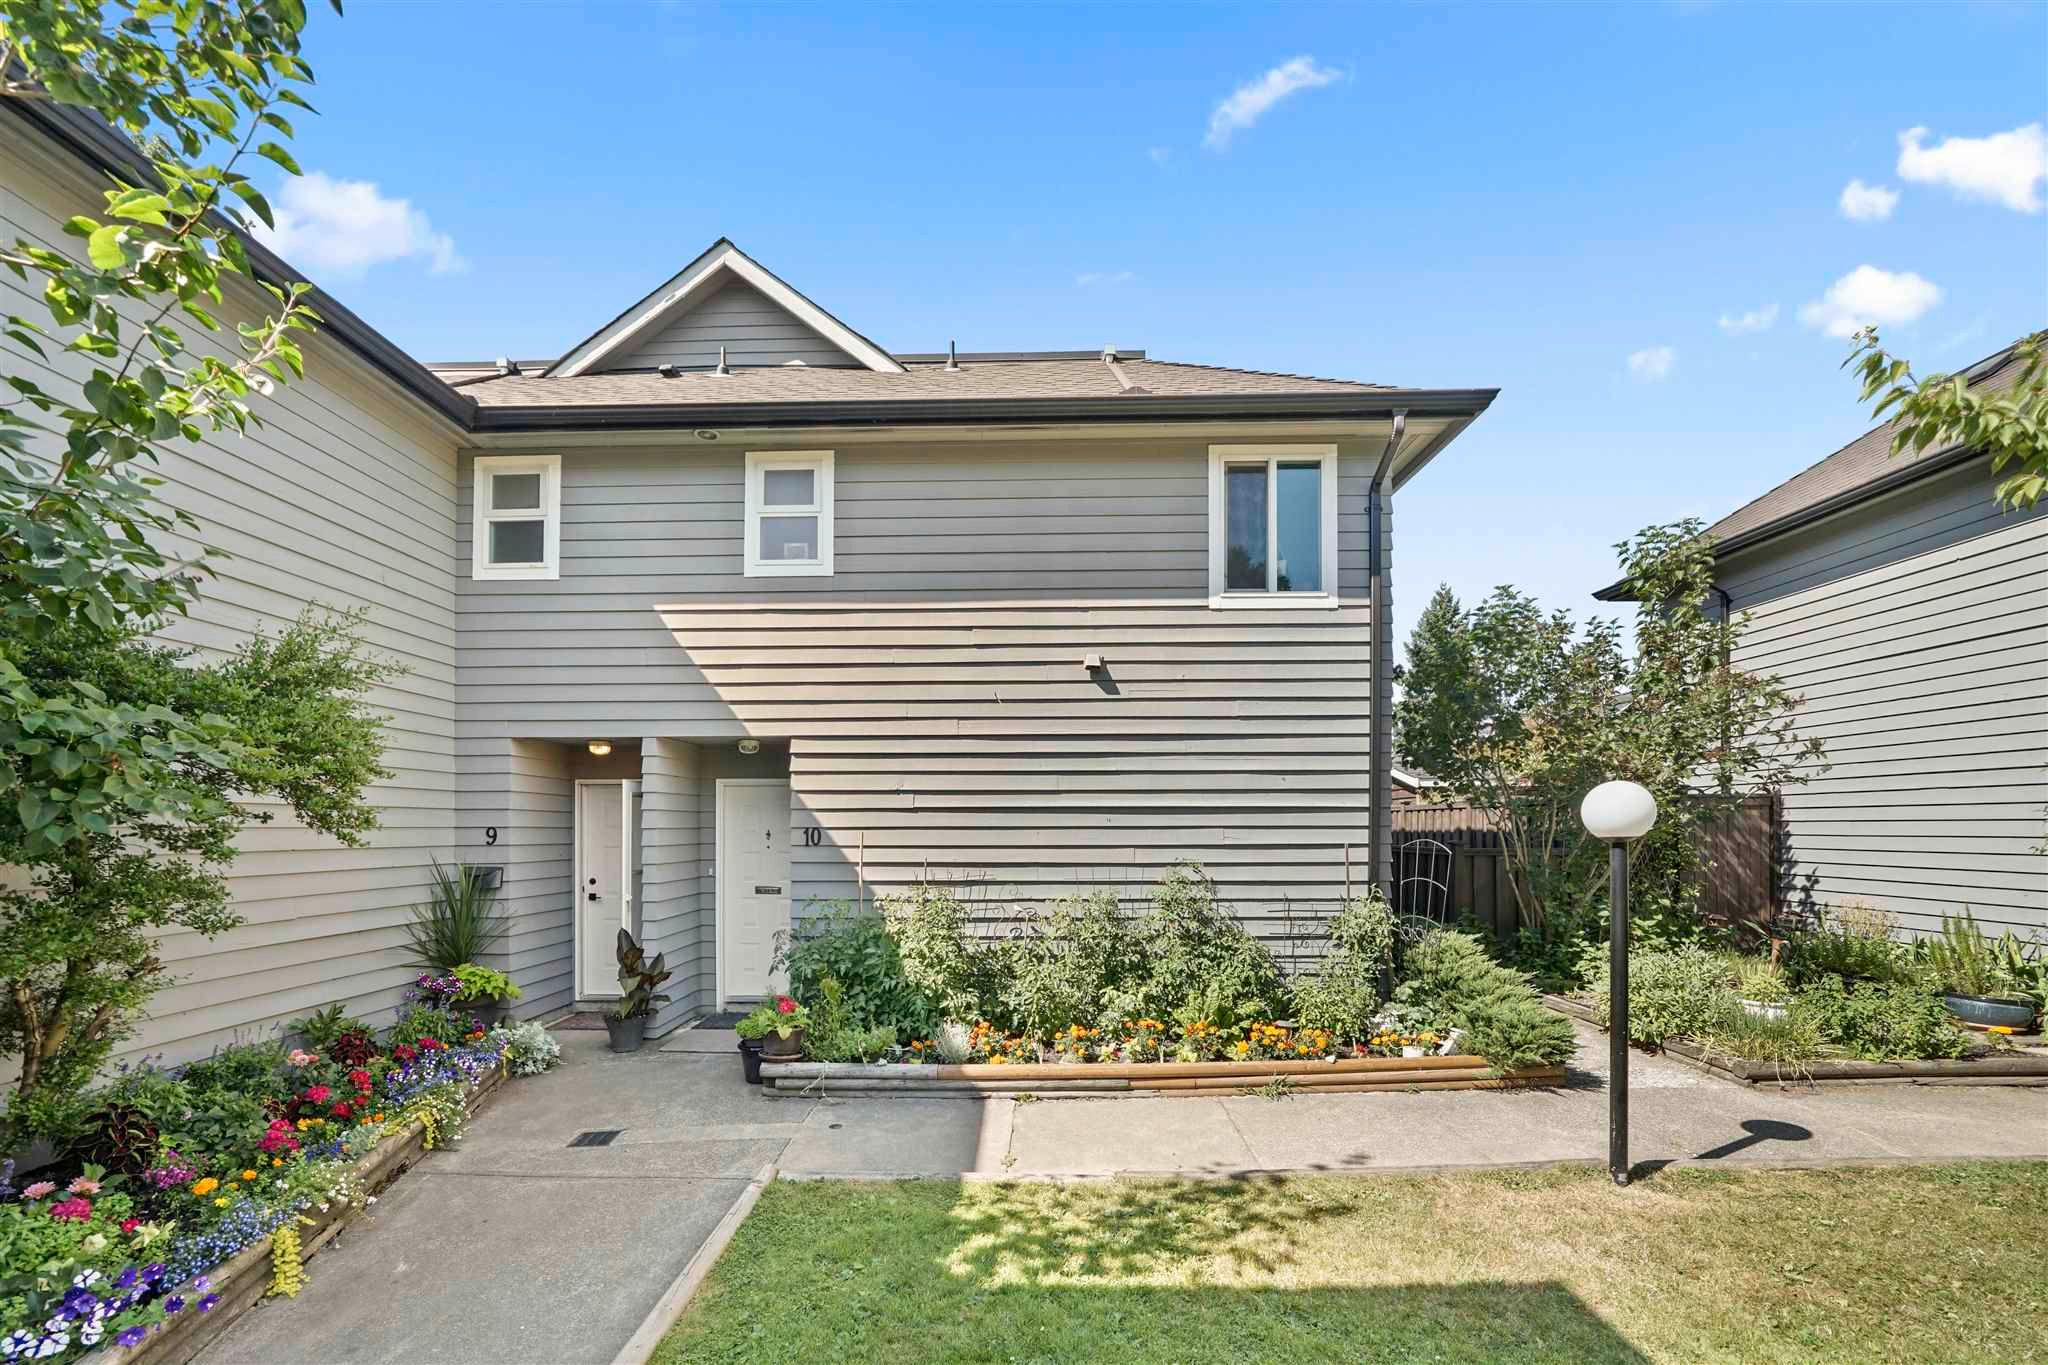 Main Photo: 10 1255 E 15TH Avenue in Vancouver: Mount Pleasant VE Townhouse for sale (Vancouver East)  : MLS®# R2599314